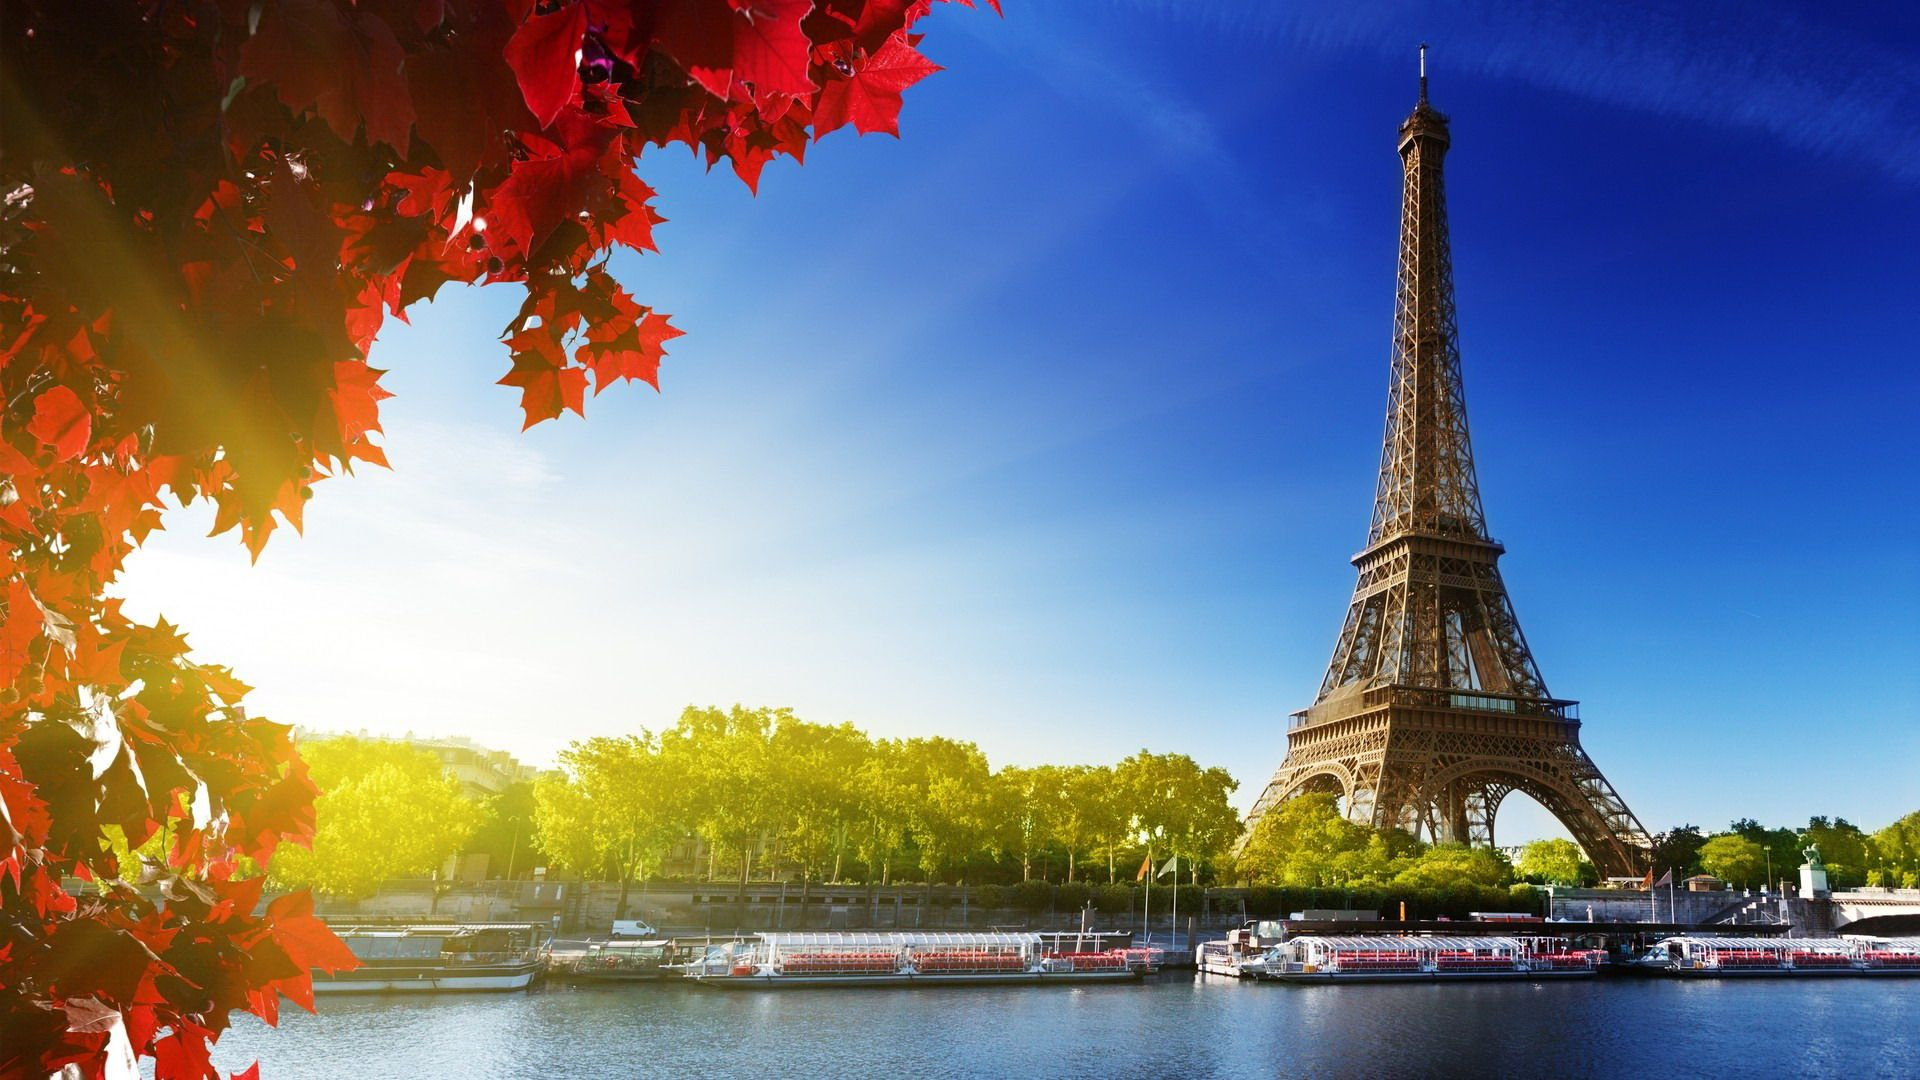 Eiffel Tower Paris France Autumn Wallpaper is a hi res Wallpaper 1920x1080